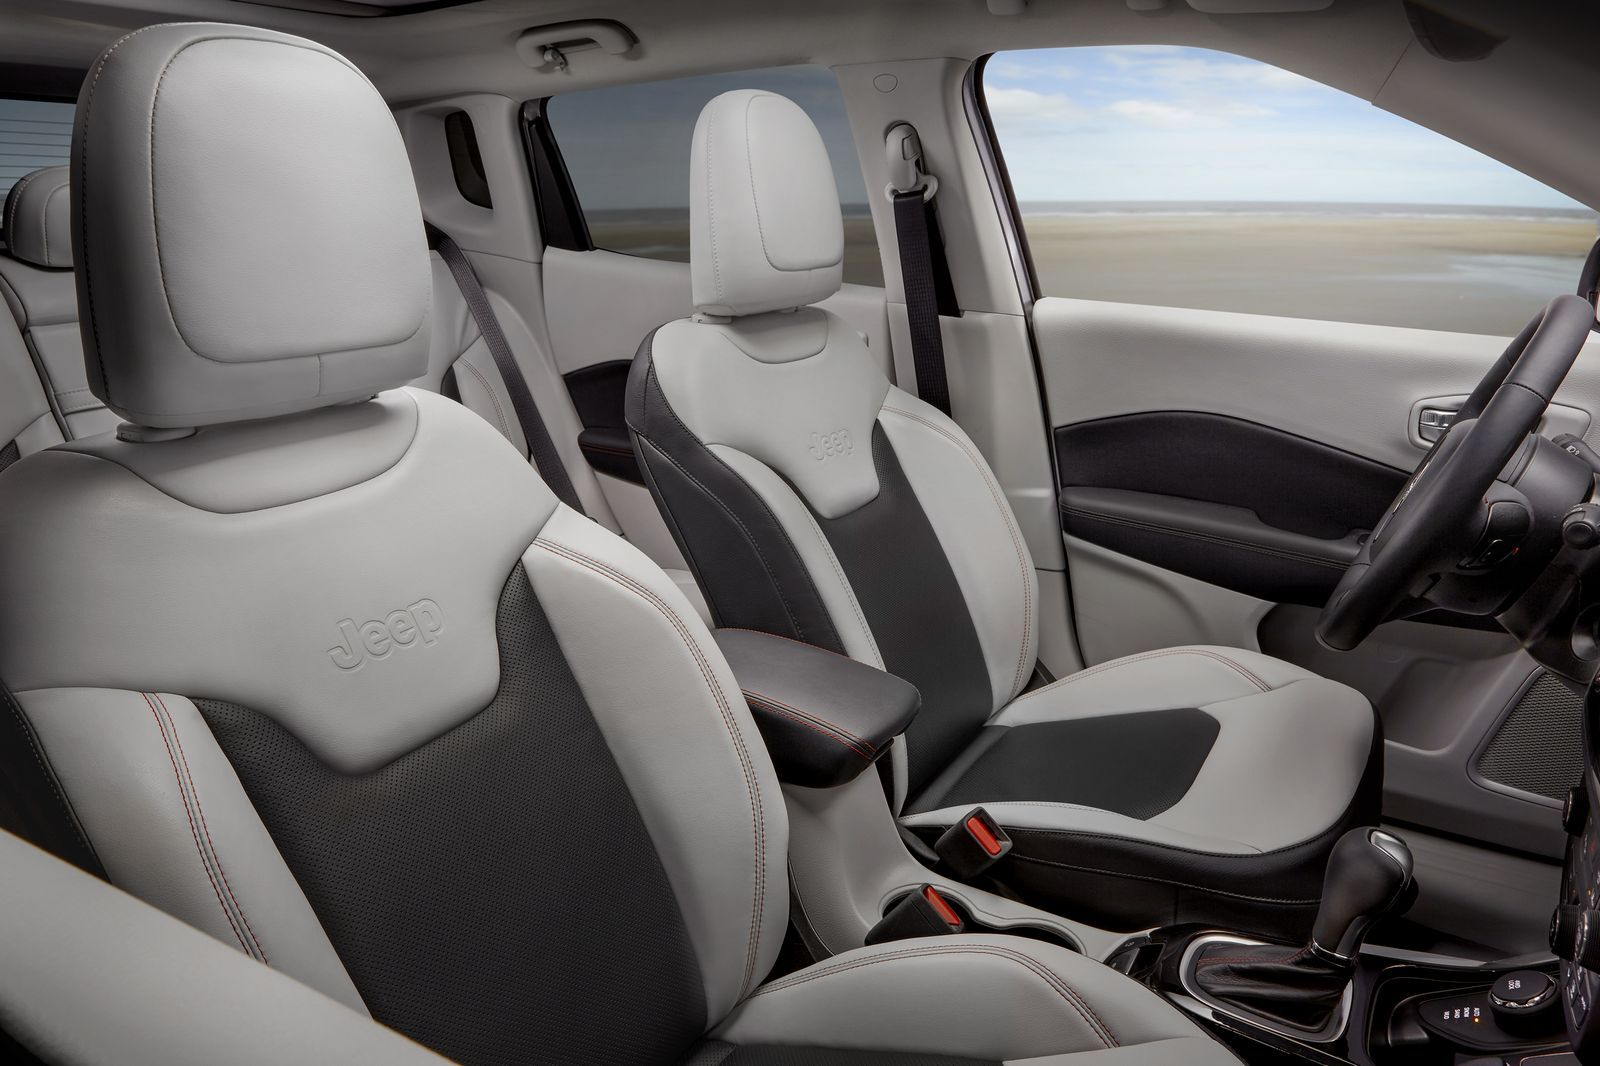 47+ Jeep compass 2017 limited interior ideas in 2021